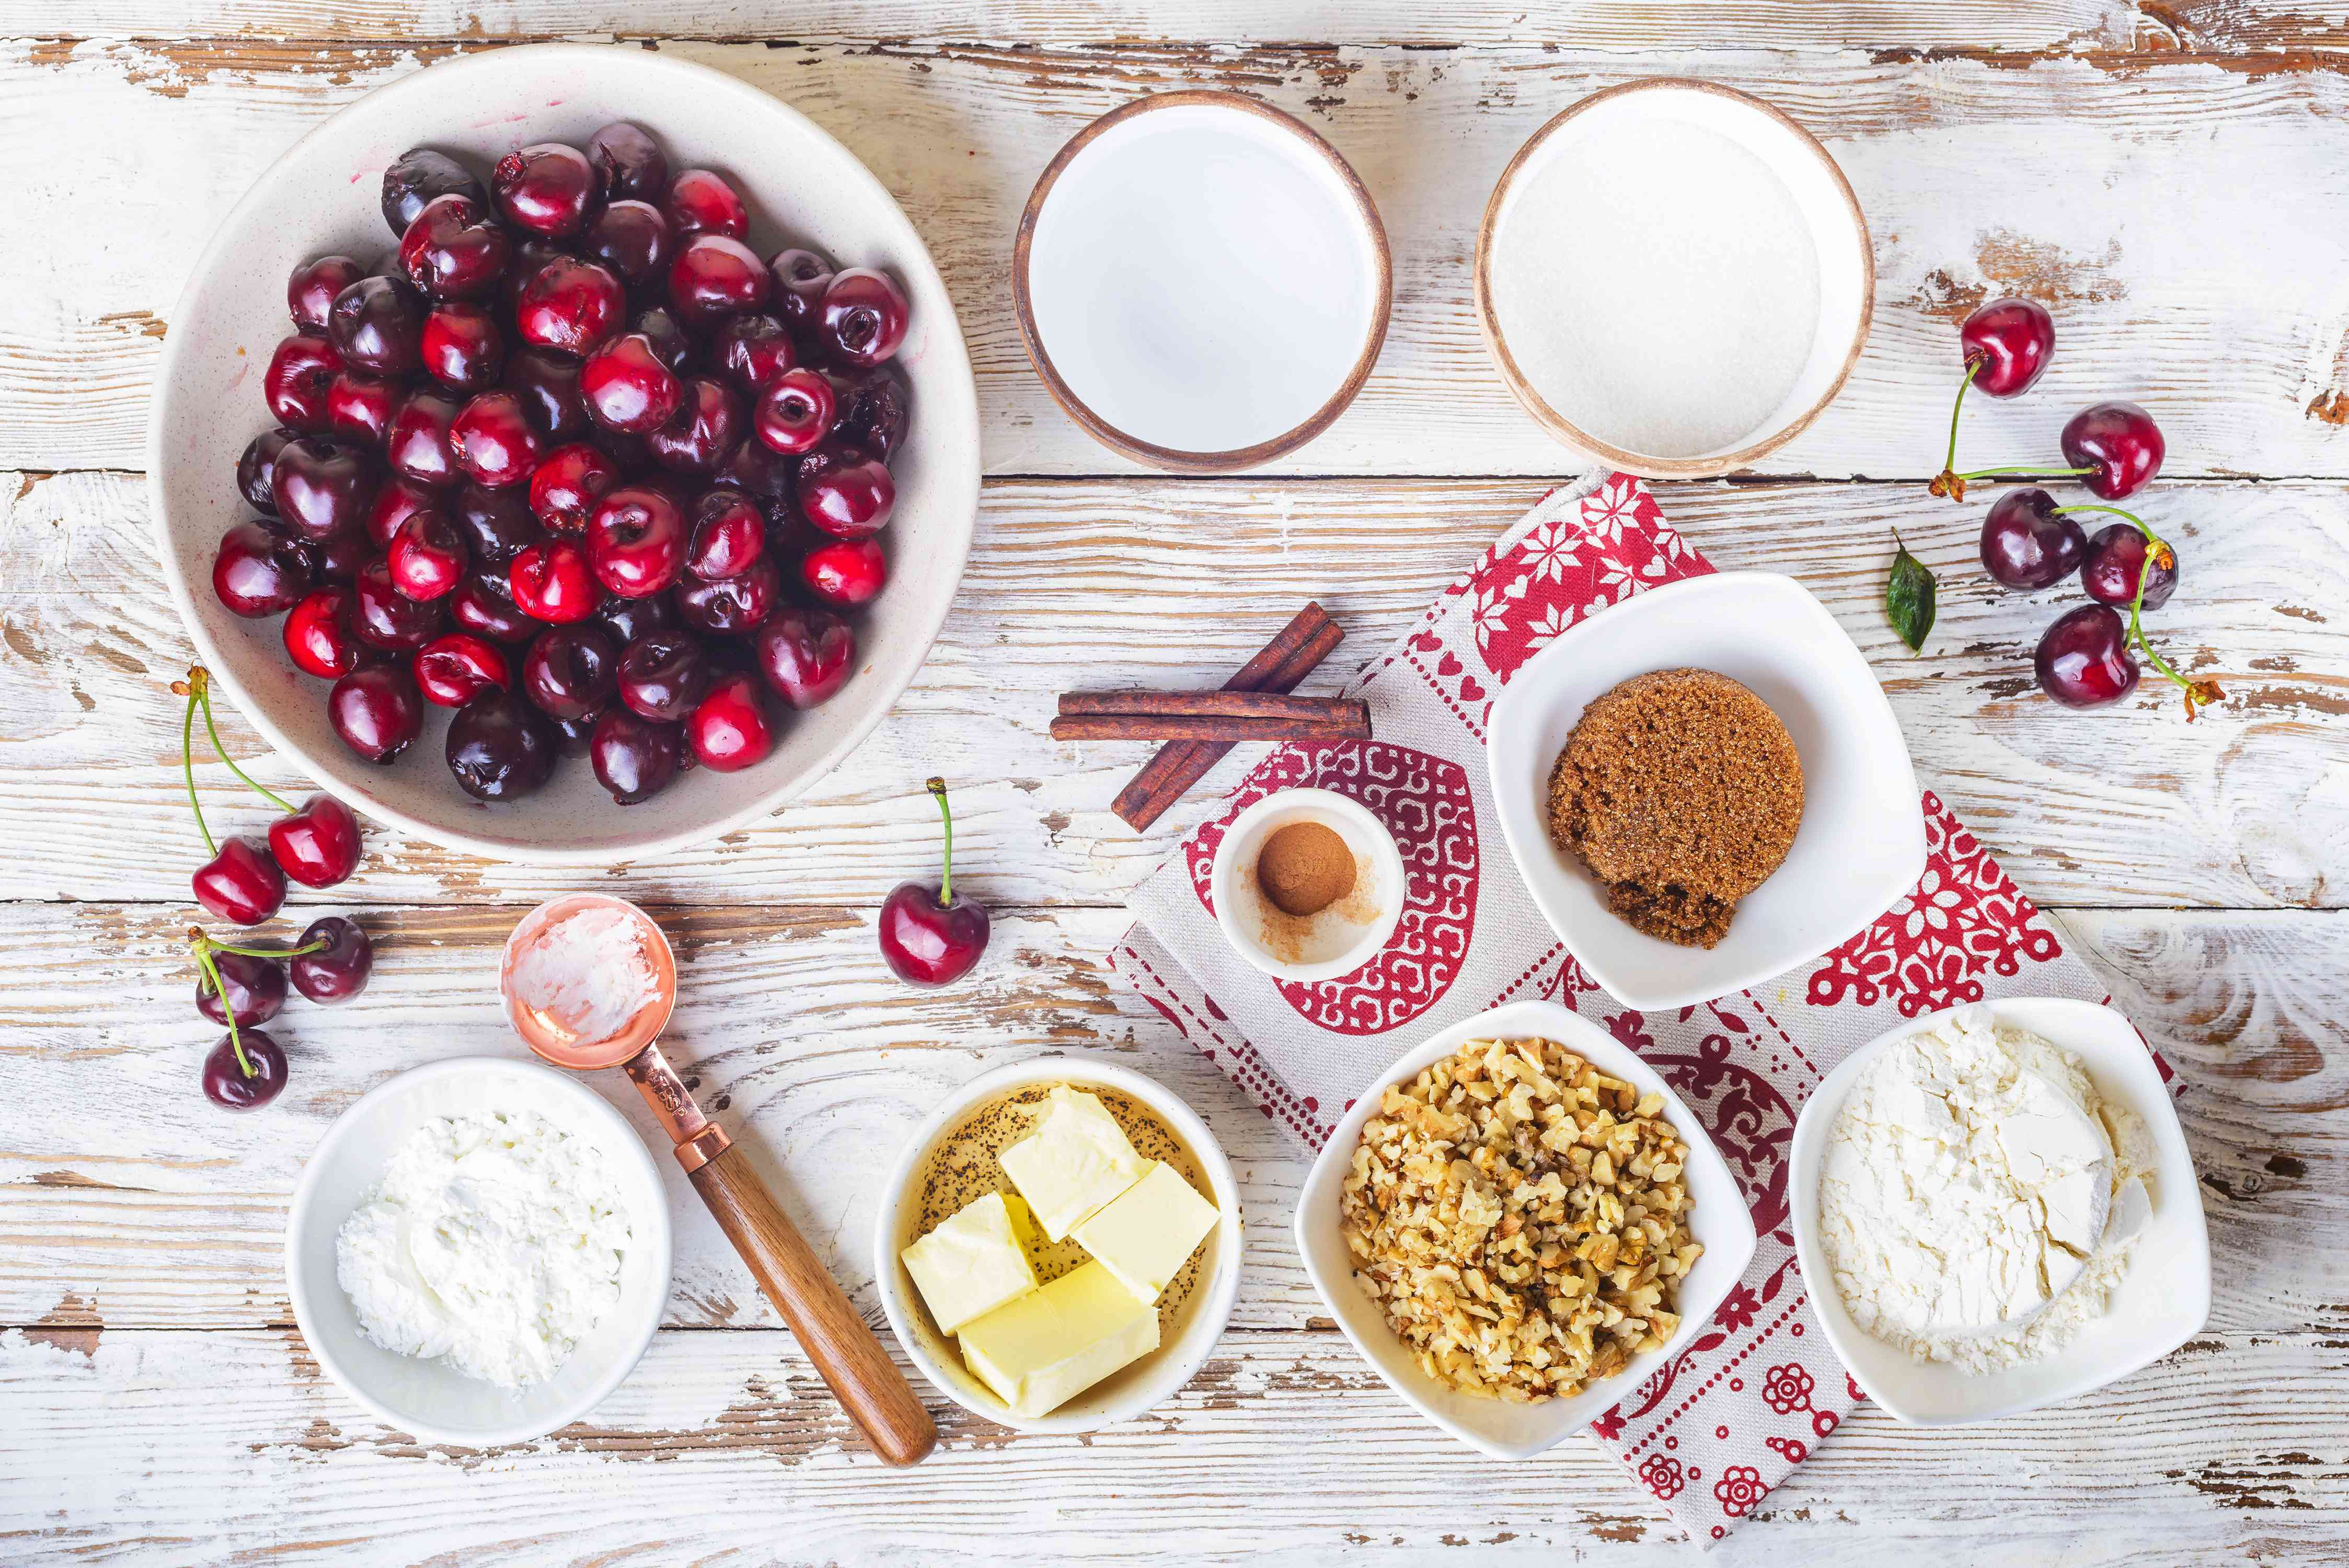 Ingredients for cherry crumble